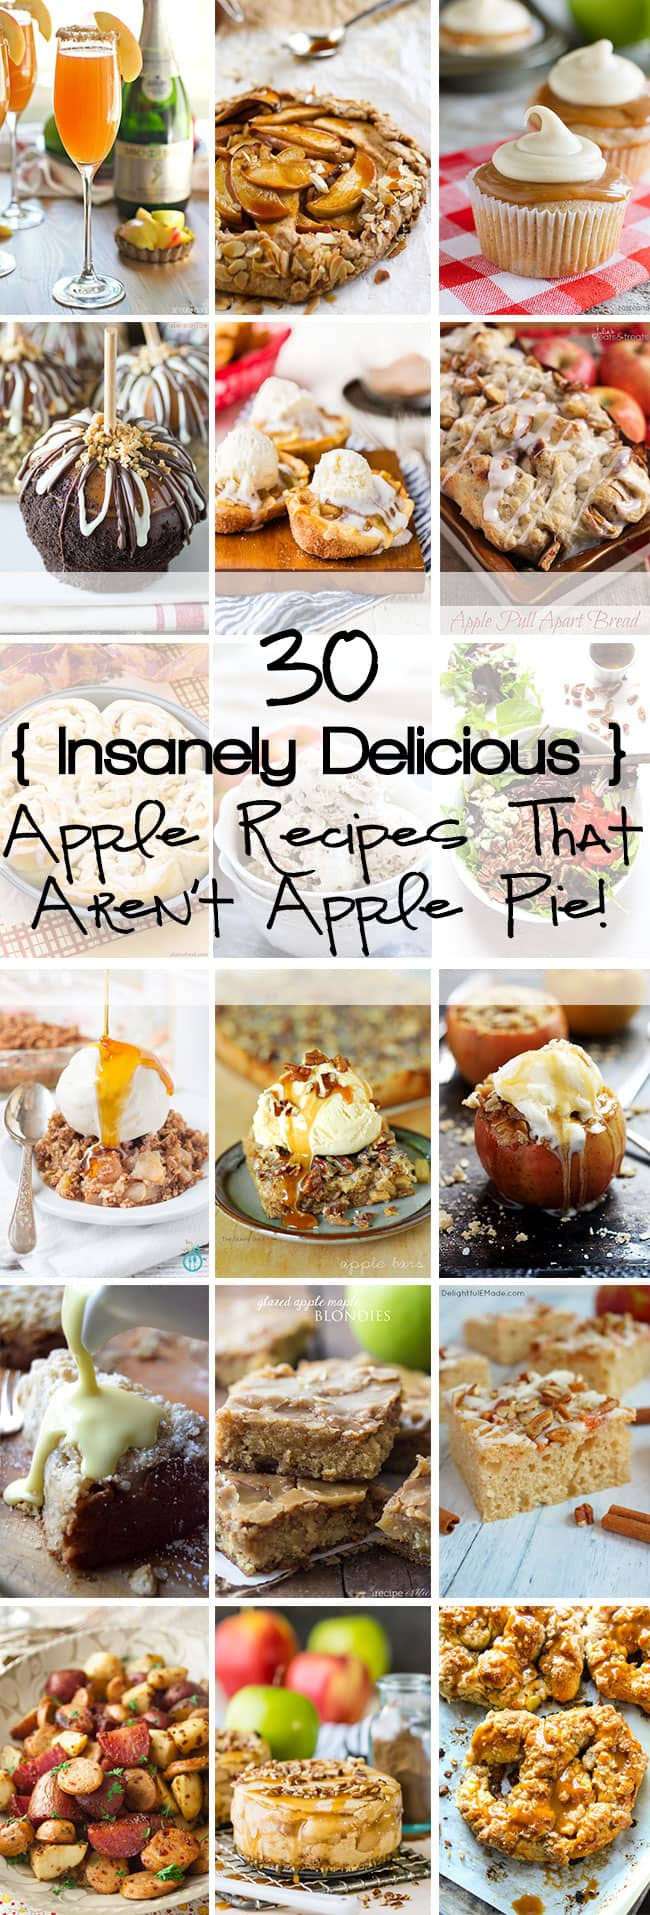 23 Insanely Delicious Apple Recipes That Aren't Apple Pie